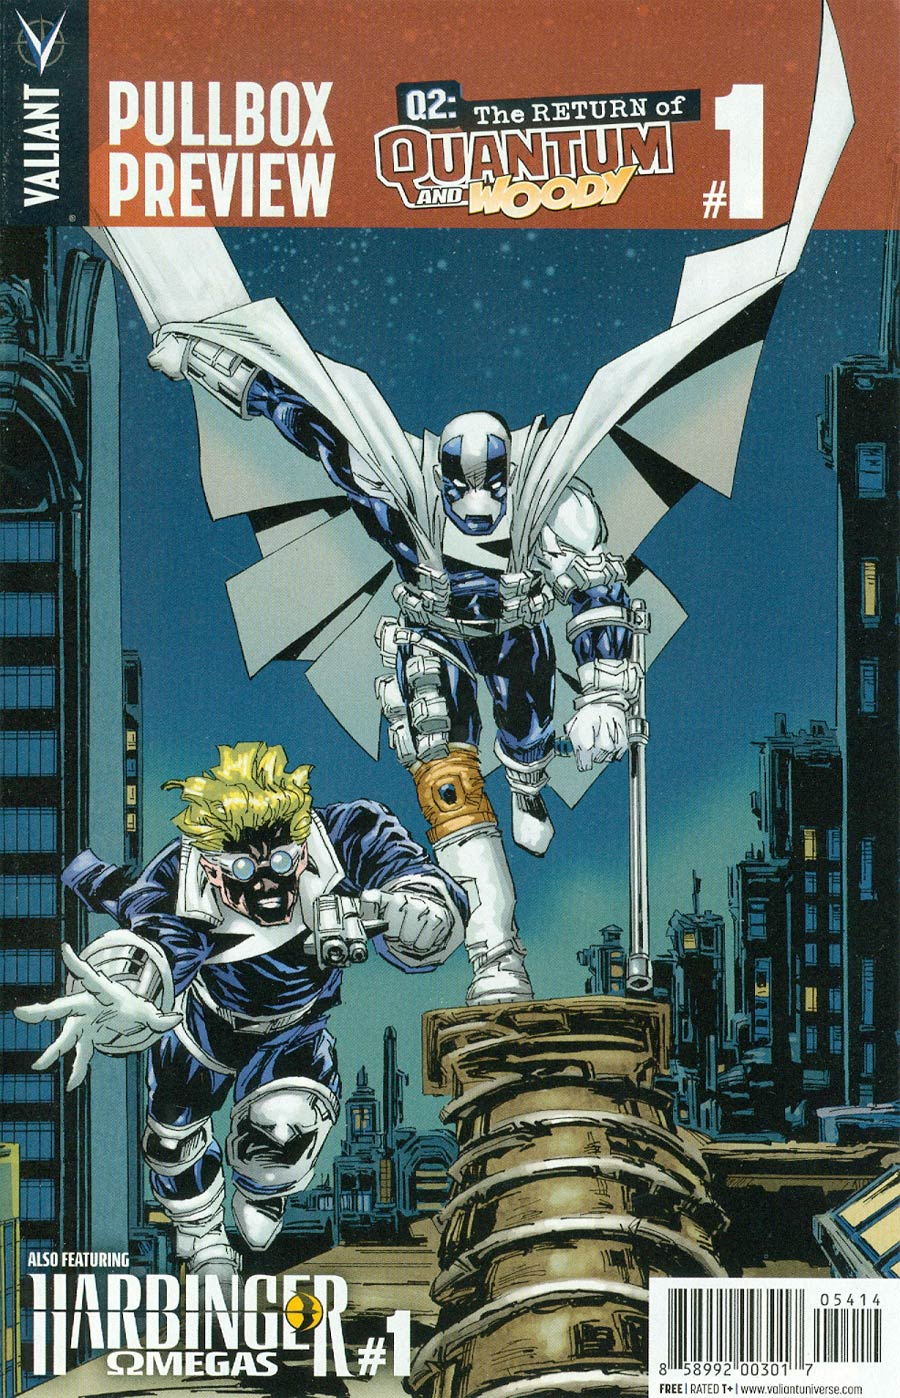 Valiant First Pullbox Preview - Q2 Return Of Quantum & Woody #1